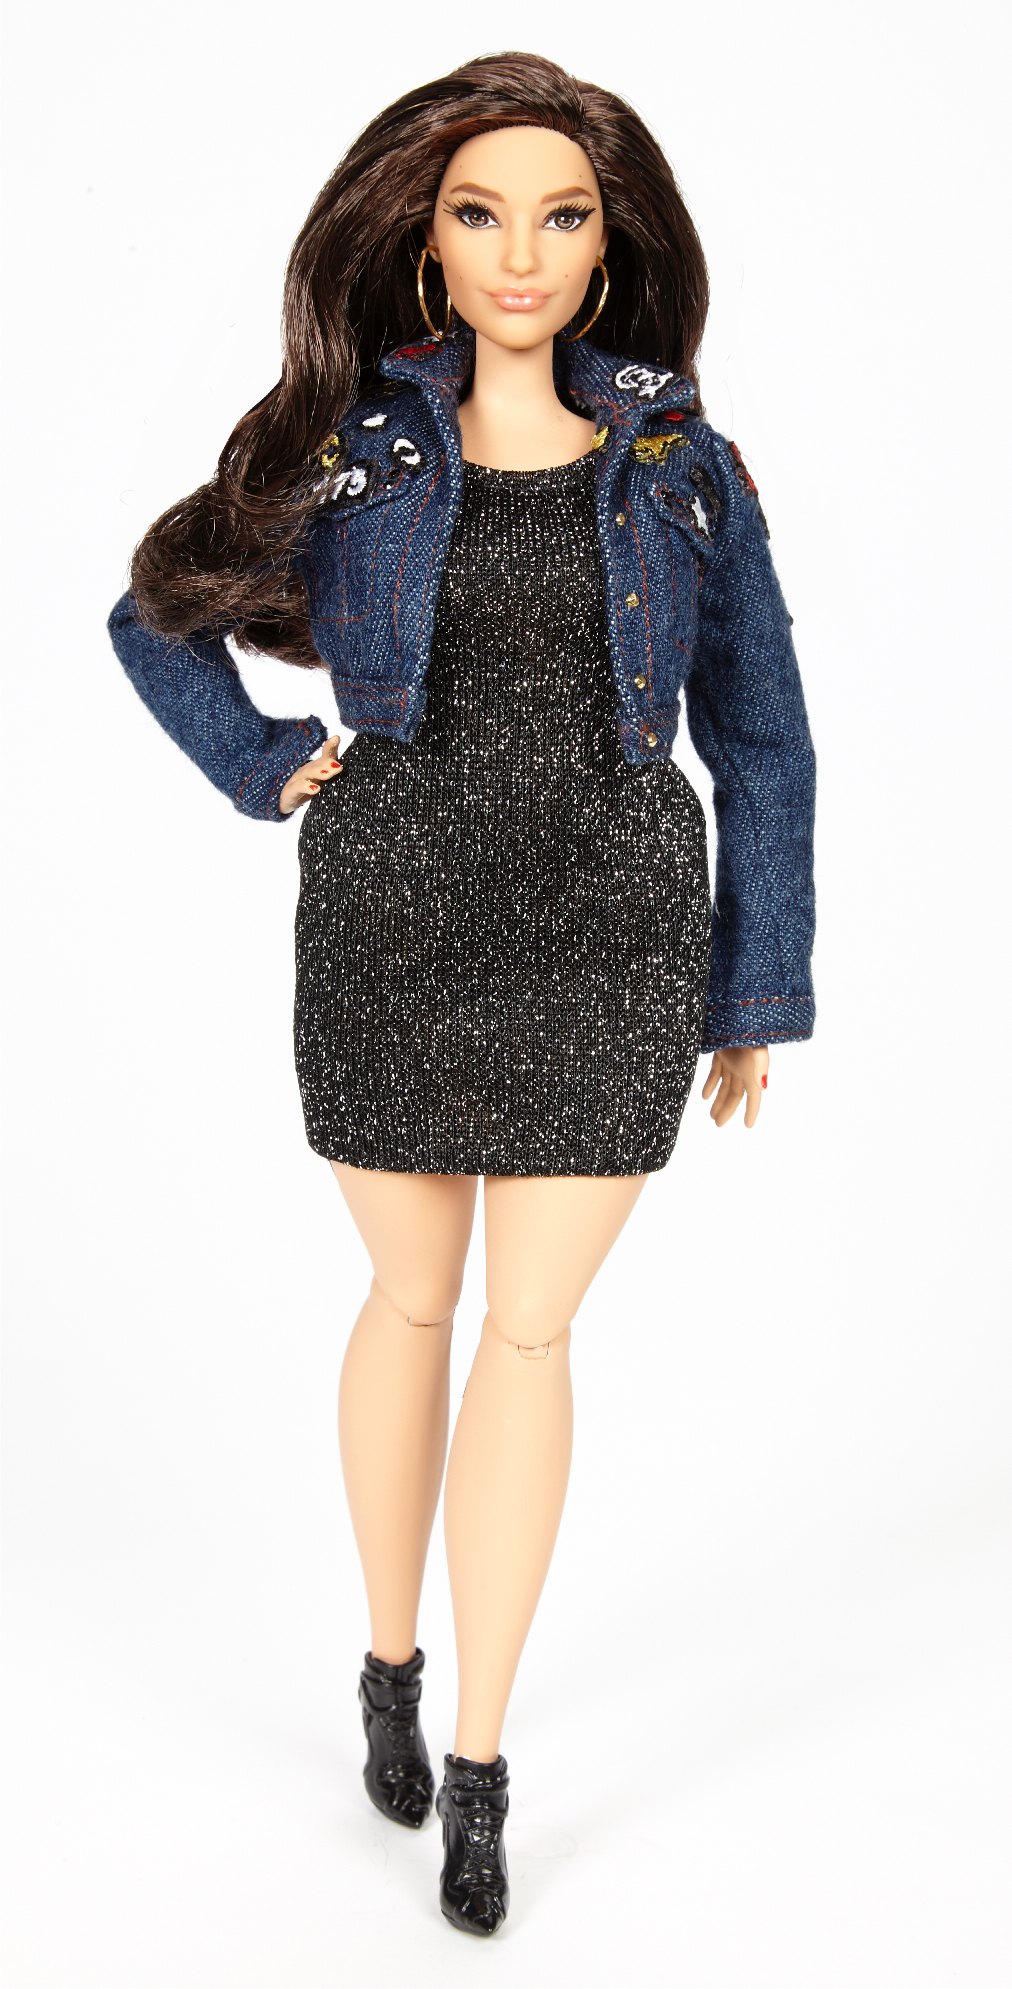 Ashley Graham in Barbie doll form.